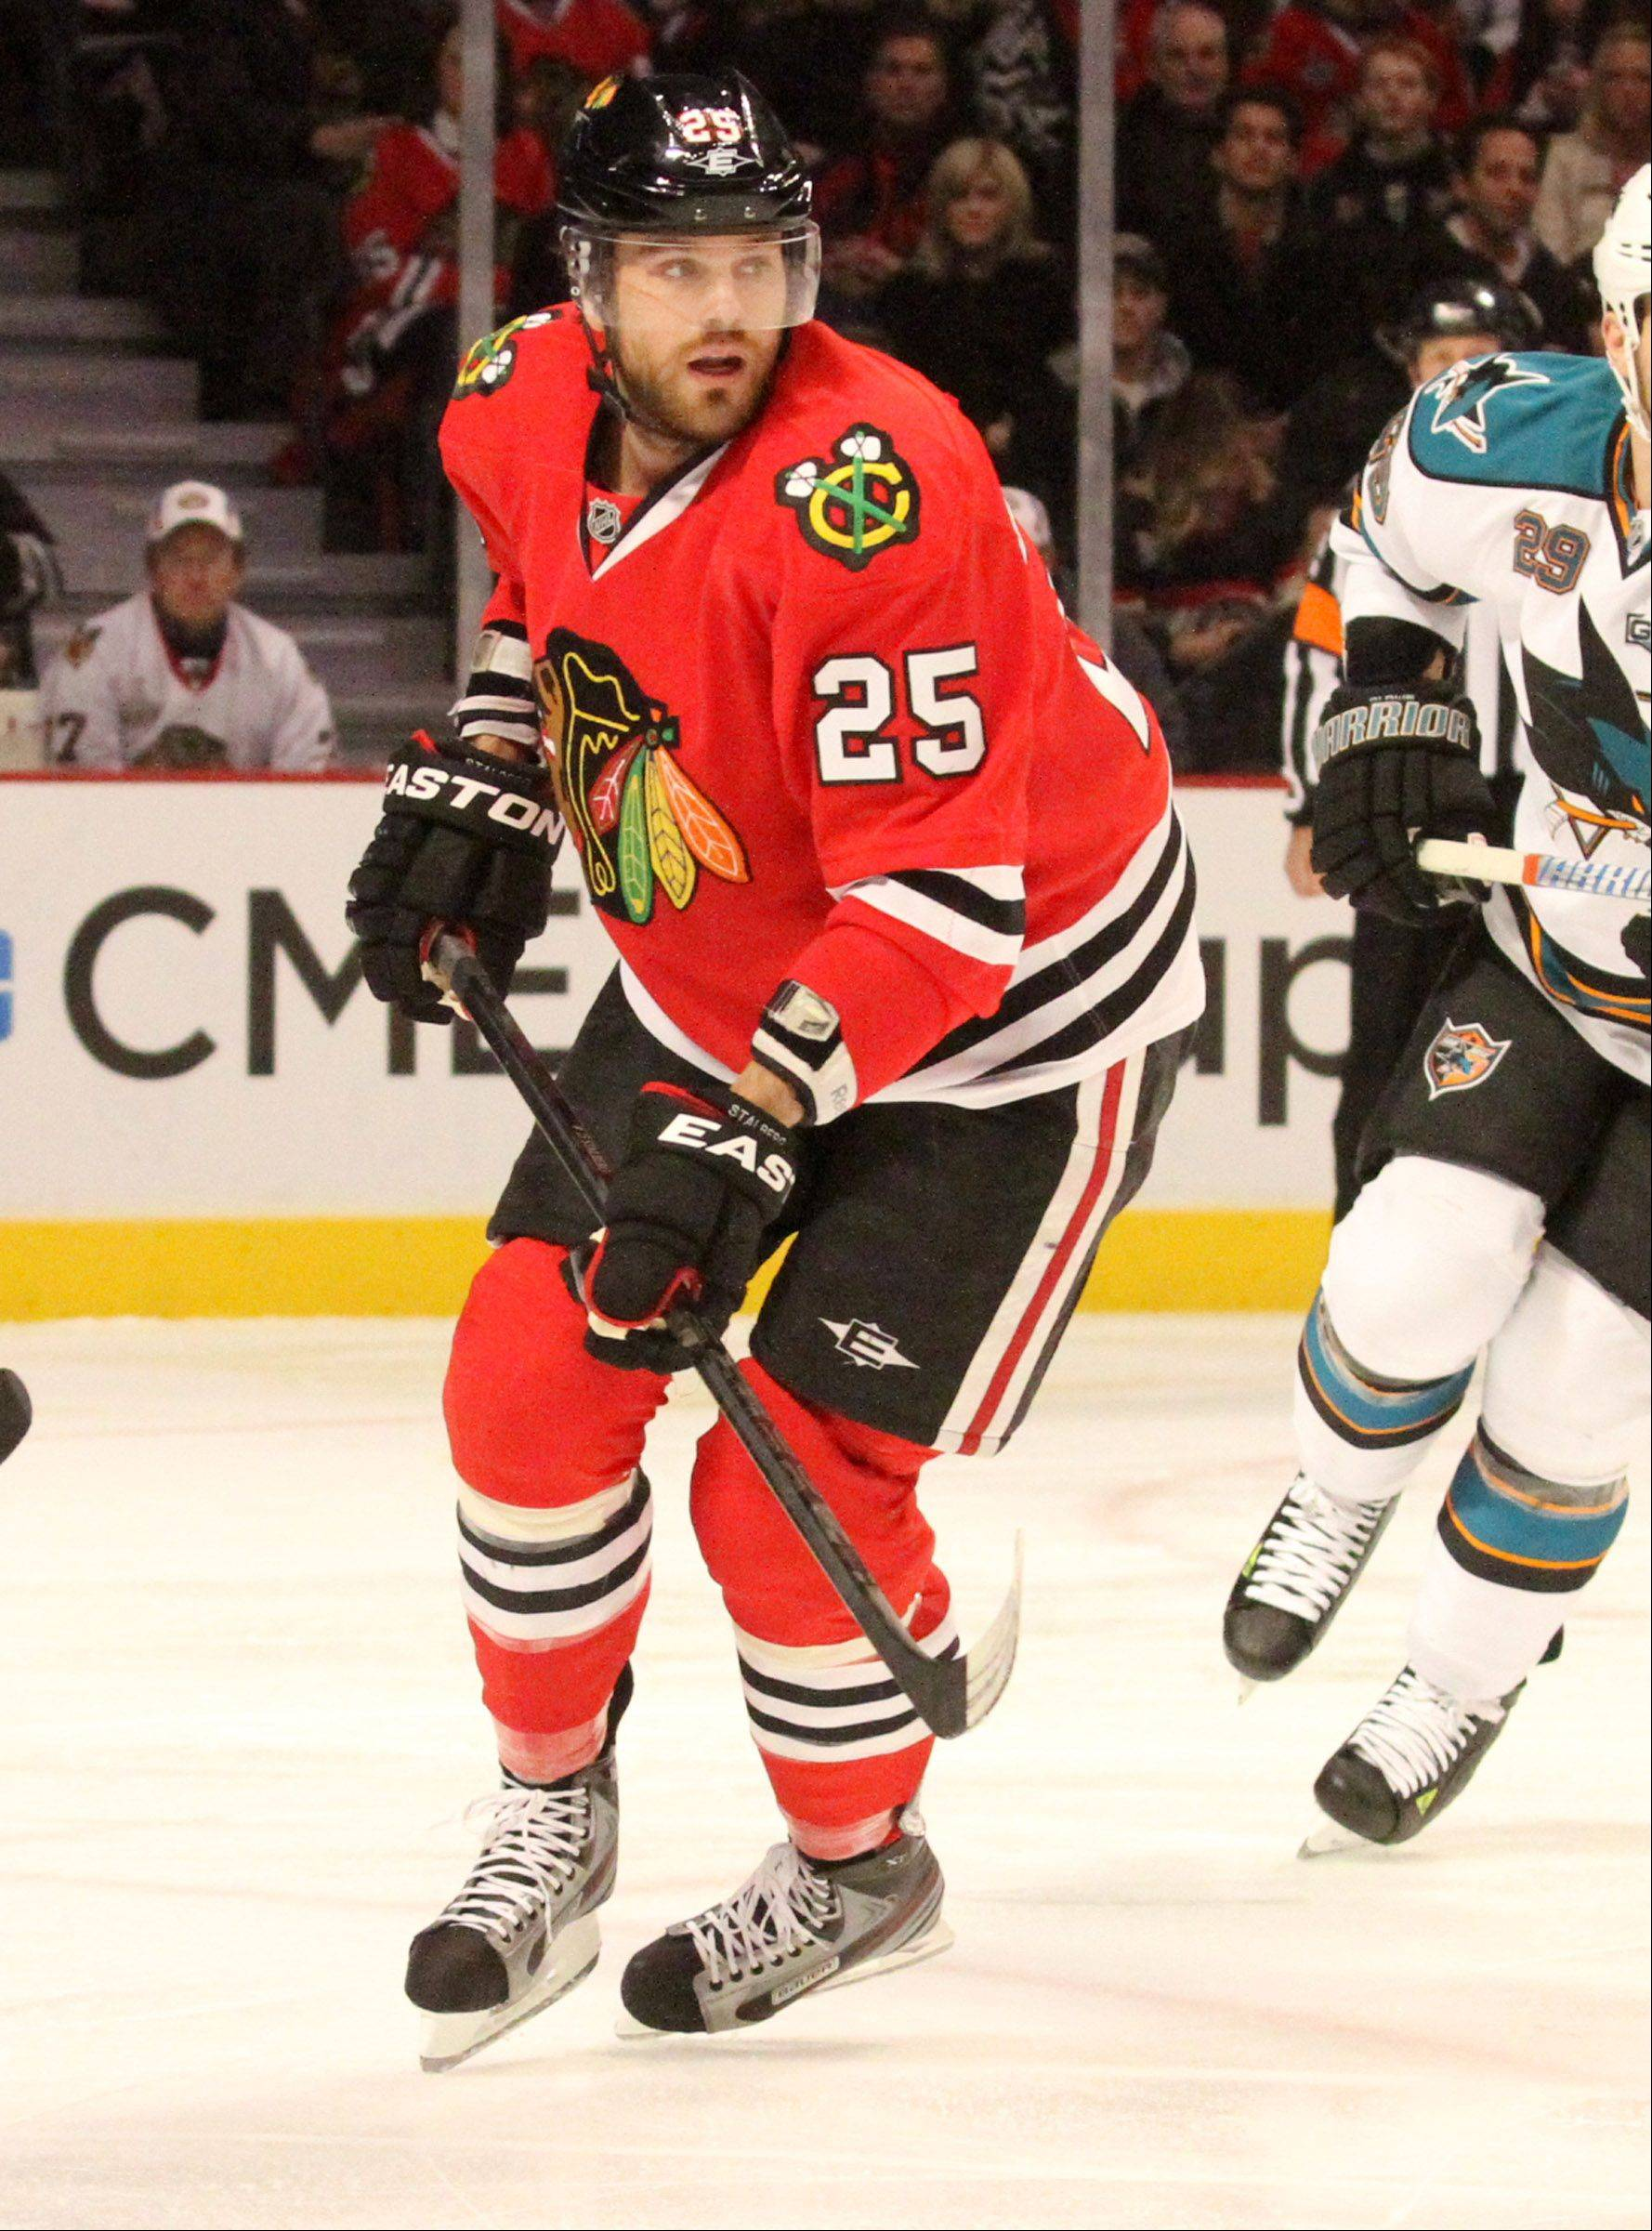 After being hit in the mouth by a puck, Blackhawks left wing Viktor Stalberg will replace his half shield with a full face shield.